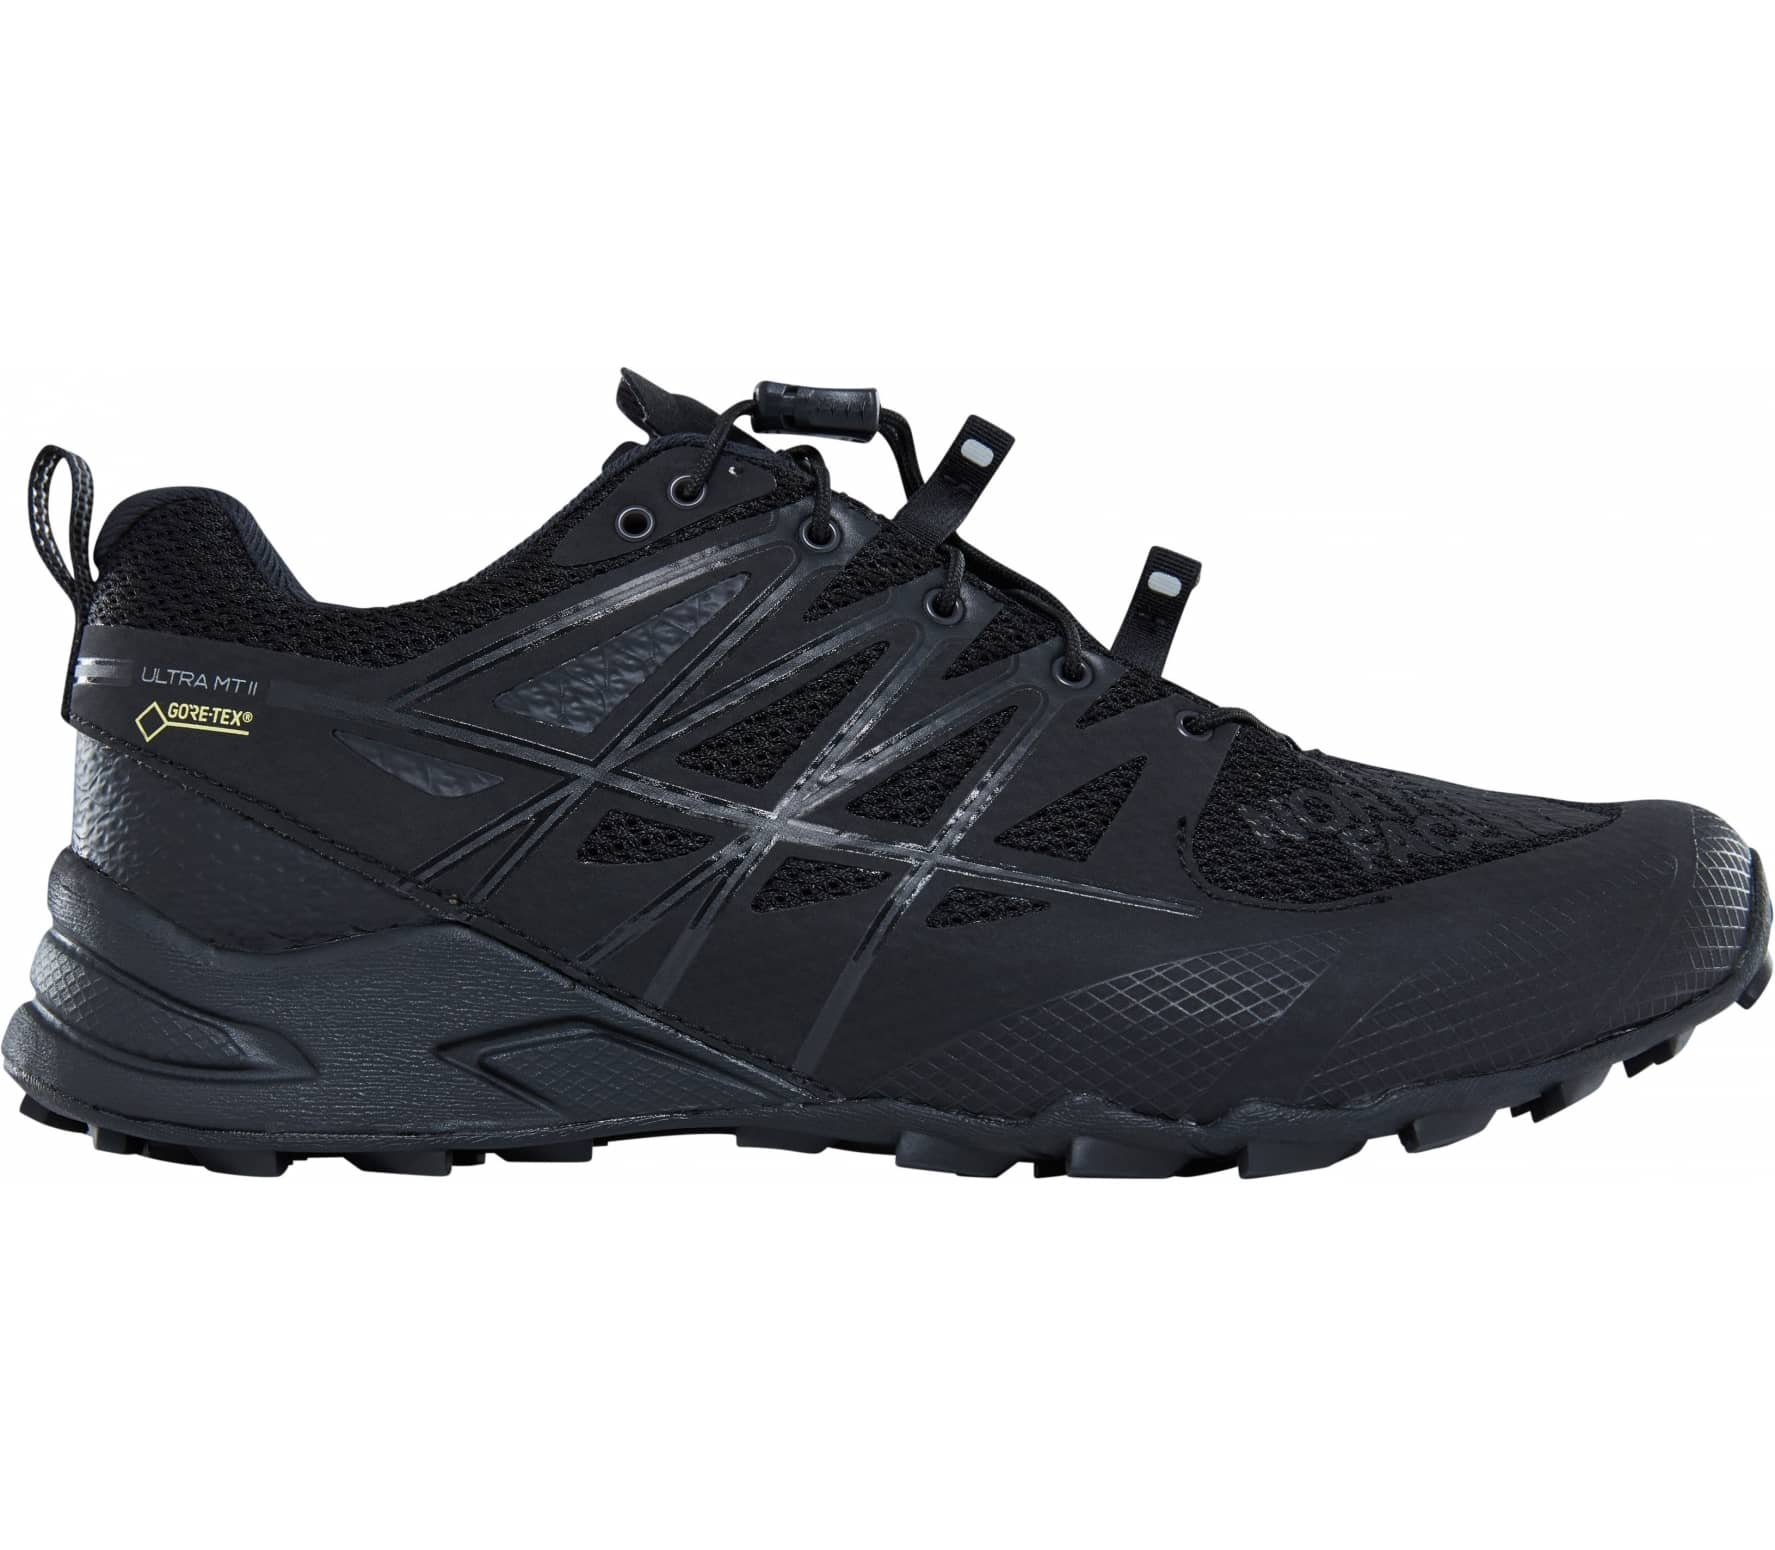 fab5036bdaa The North Face - Ultra Mt II GTX women s trail running shoes (black ...